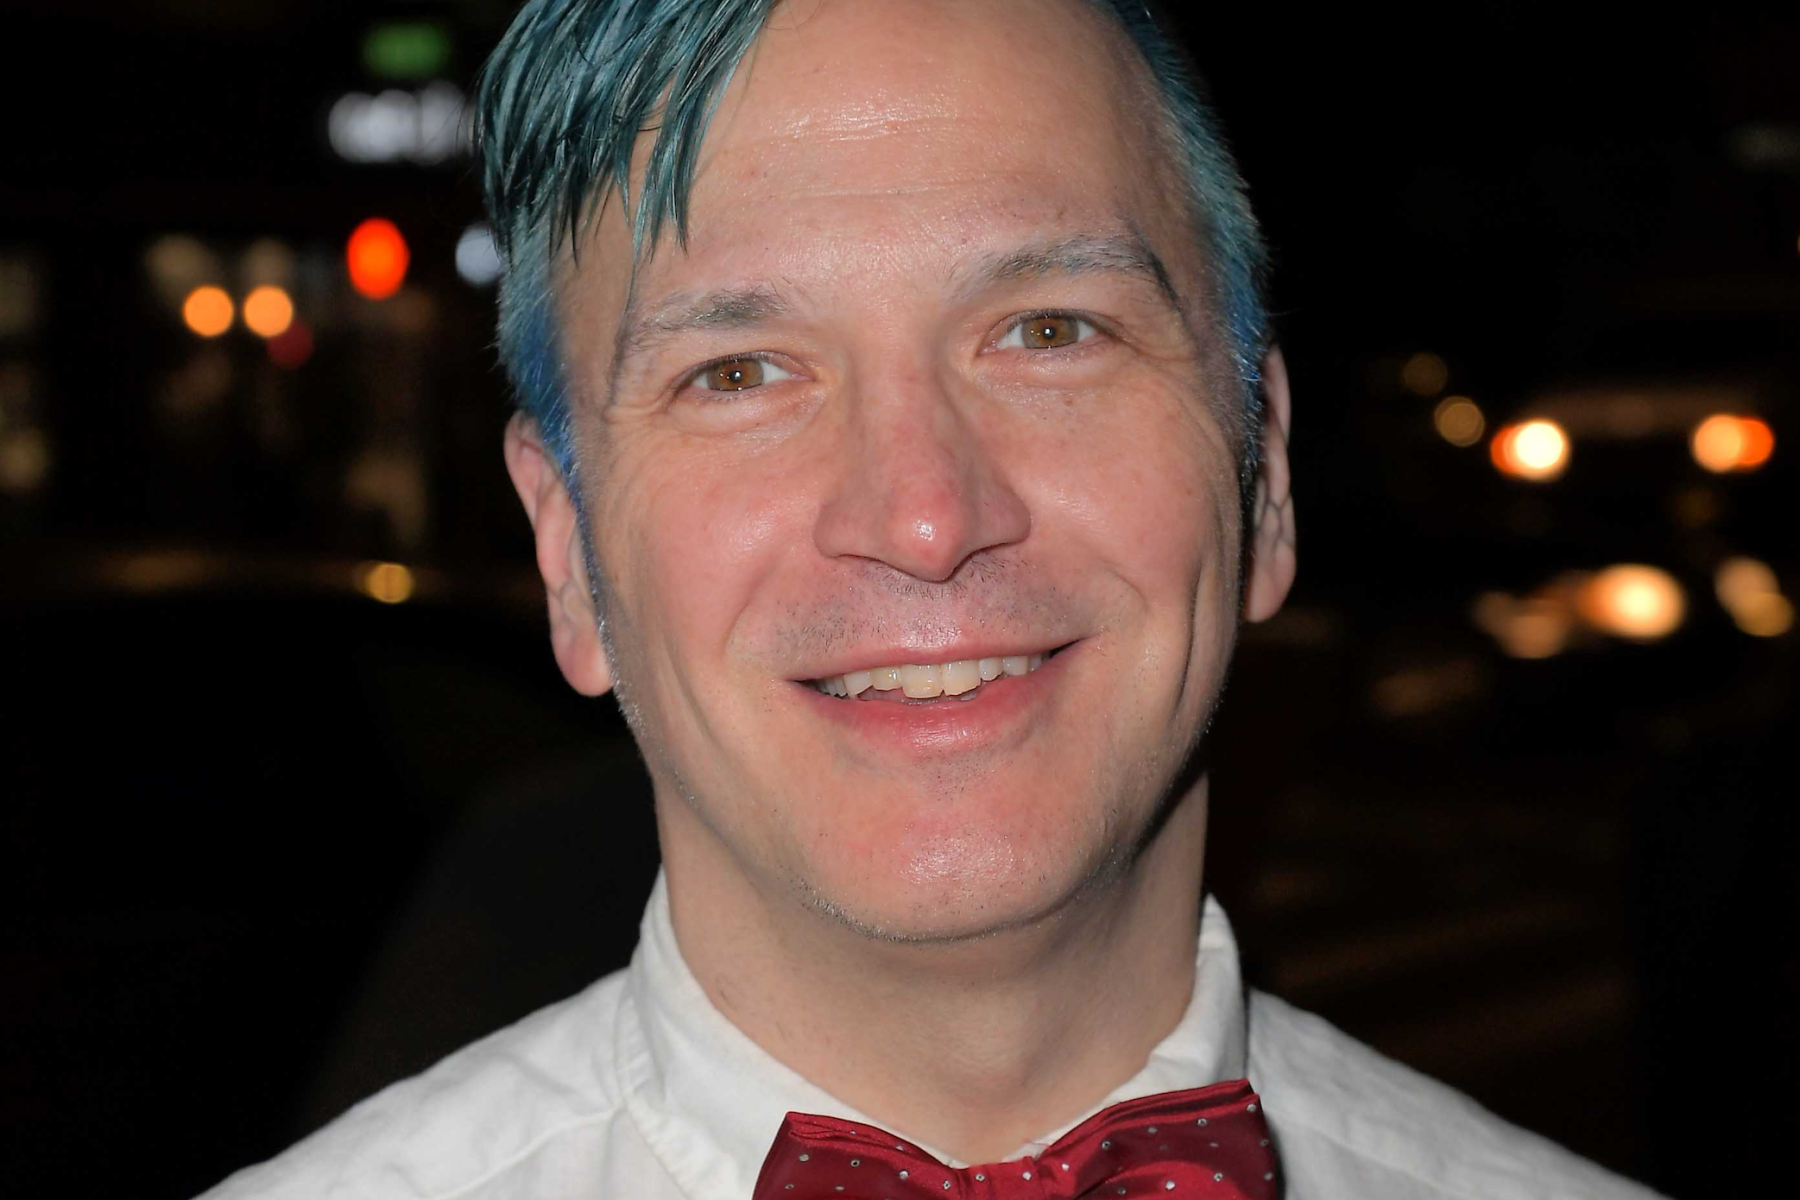 Promoter Michael Alig is found dead; Suspected heroin overdose